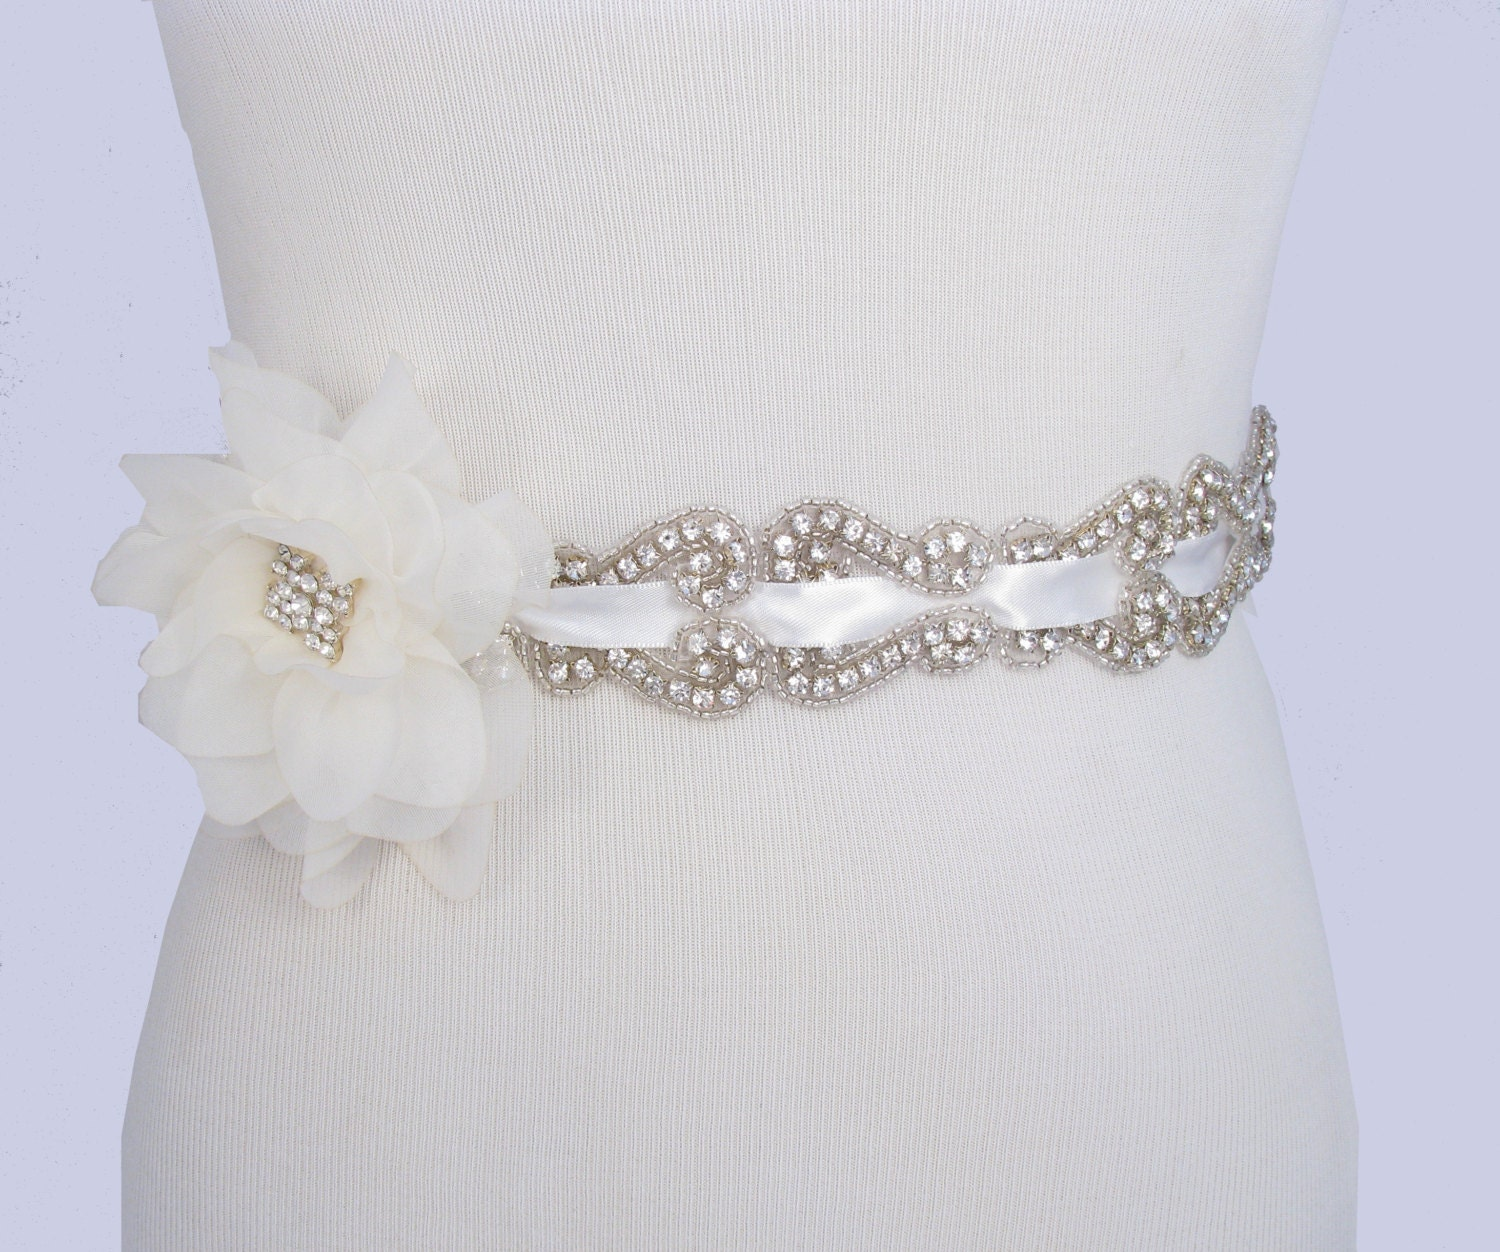 Flower Wedding Dress Sash Crystal Rhinestone by